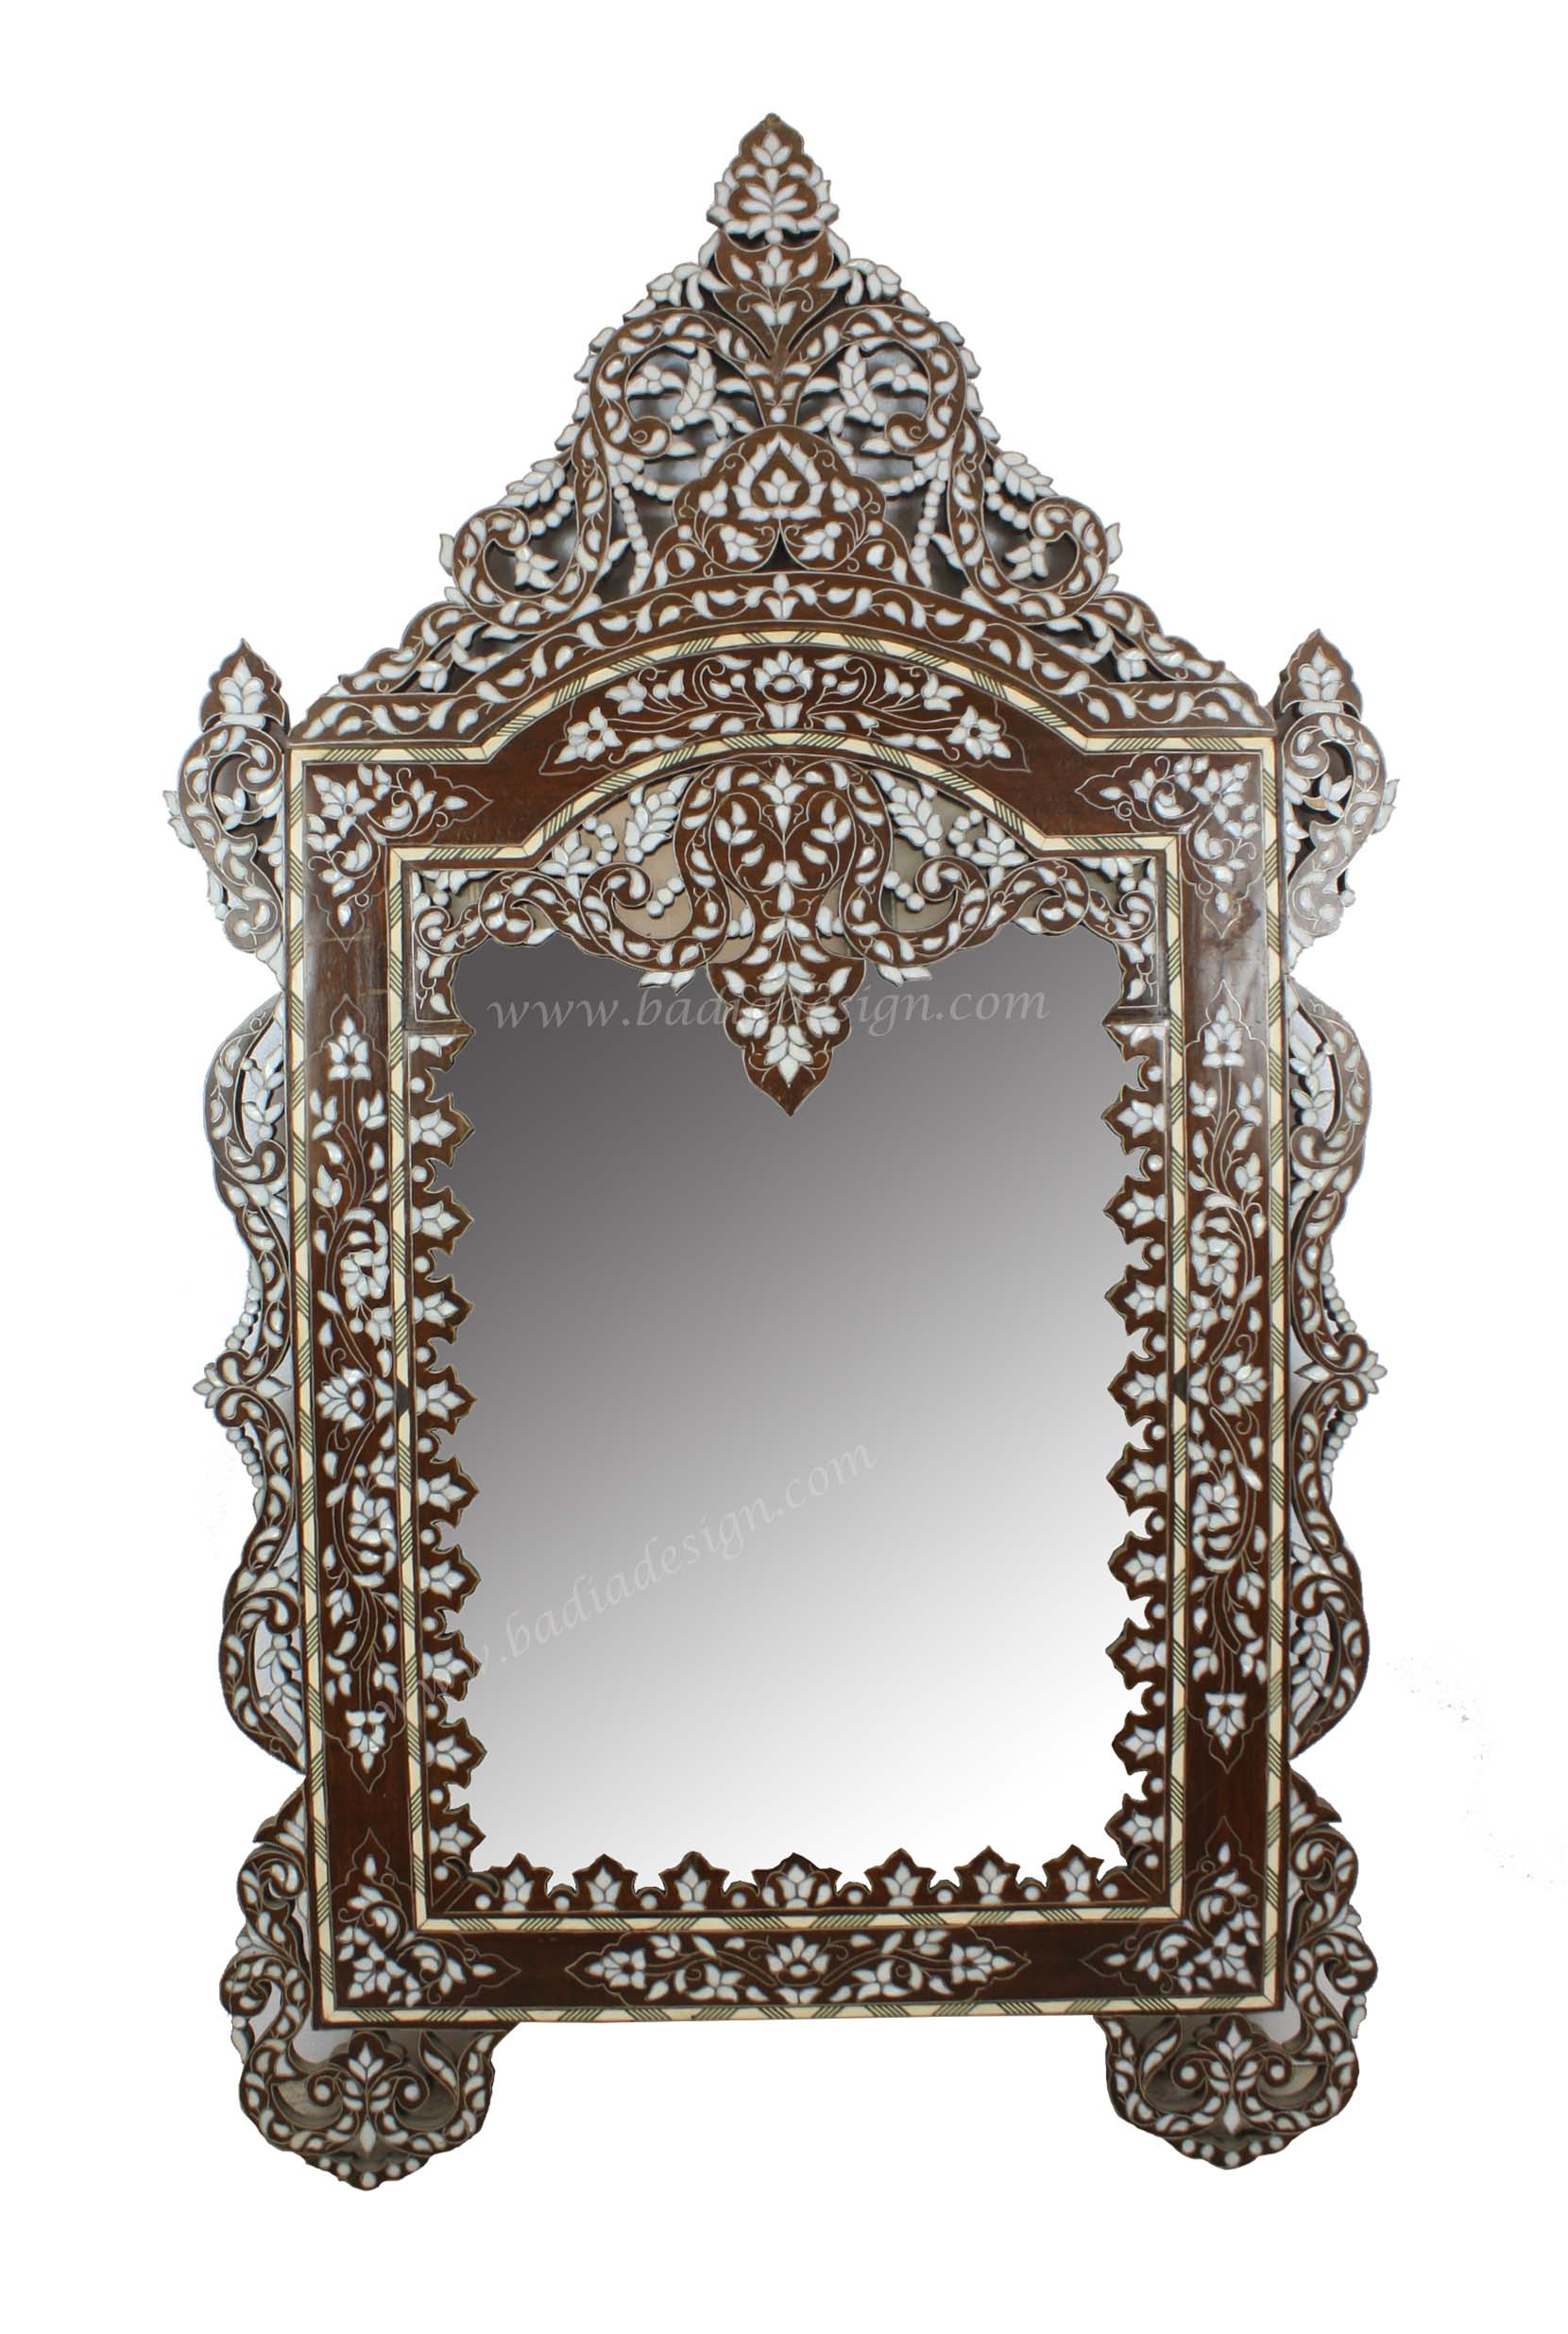 tall-moroccan-mother-of-pearl-mirror-m-mop030.jpg